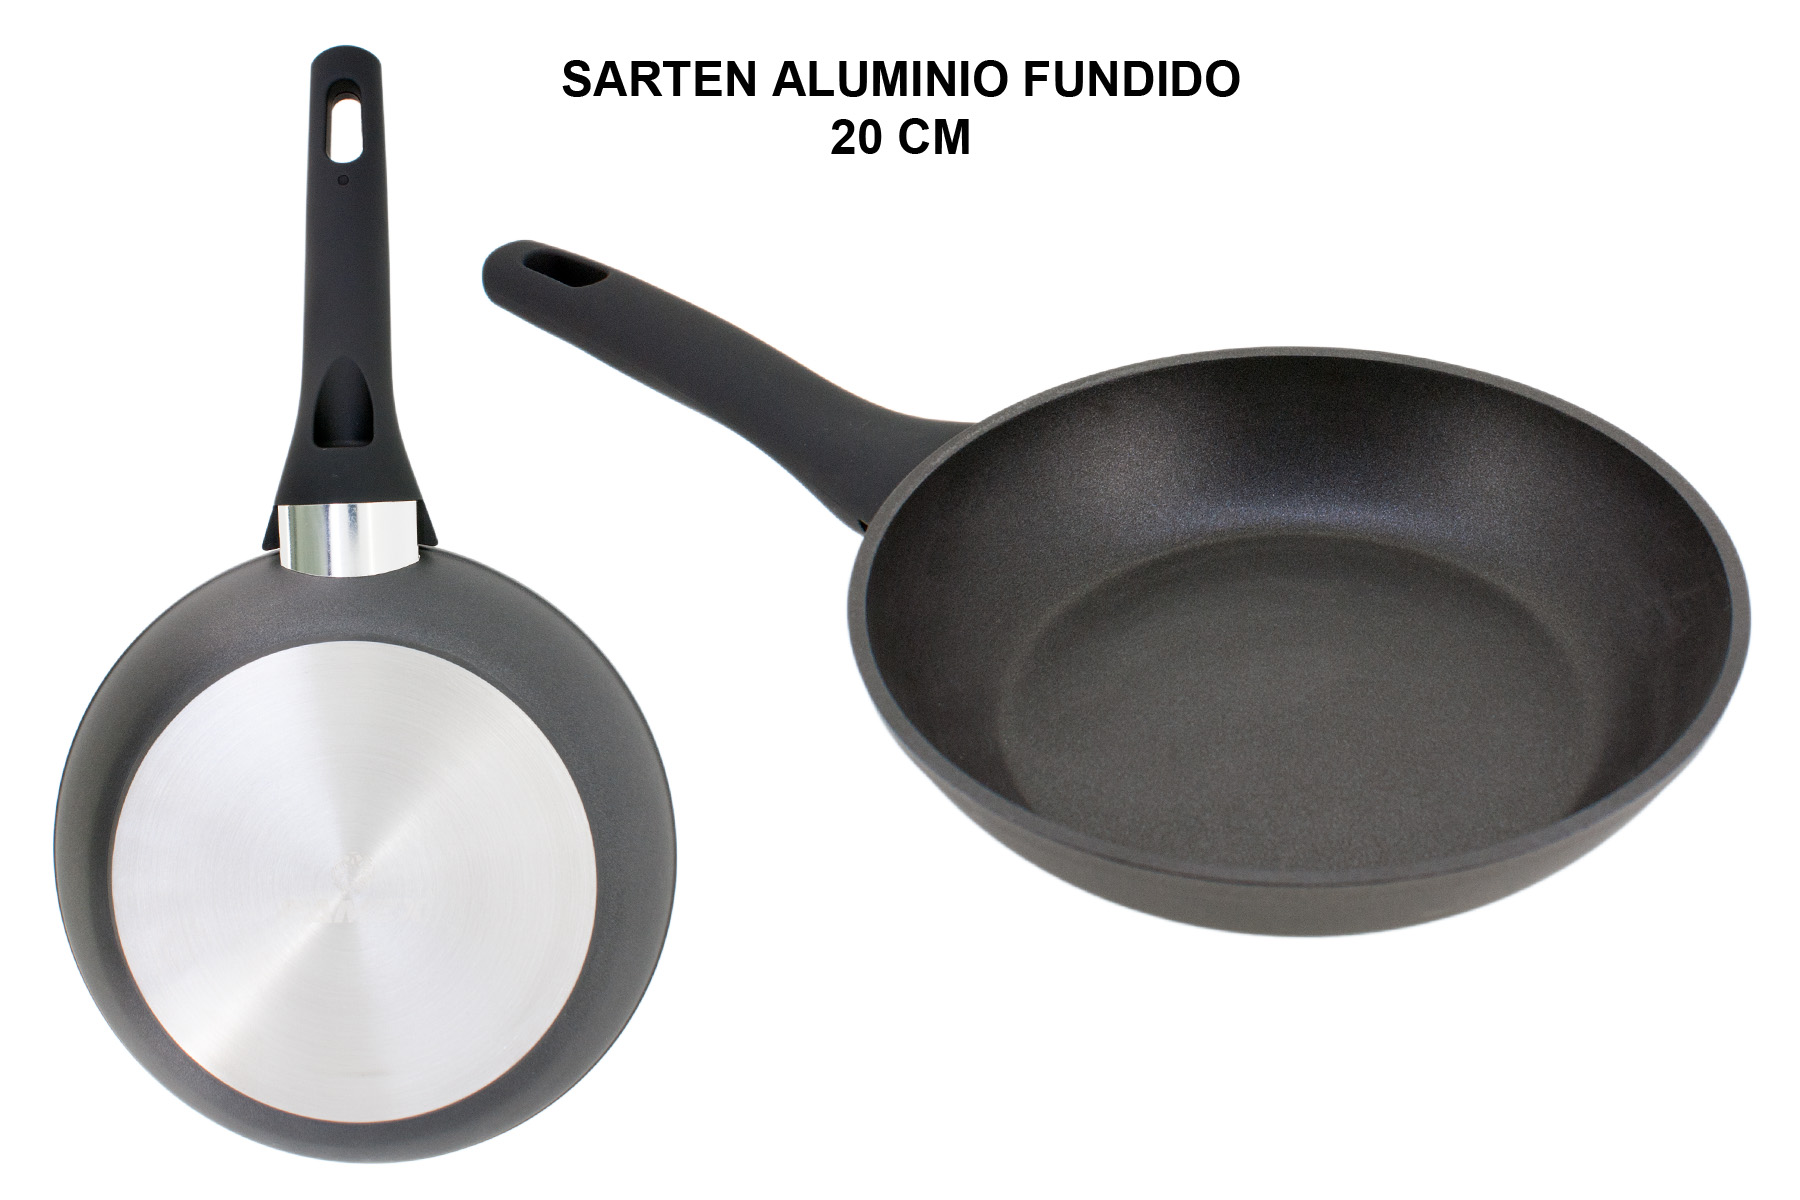 SARTEN ALUMINIO FUNDIDO FULL INDUCTION 20 CM